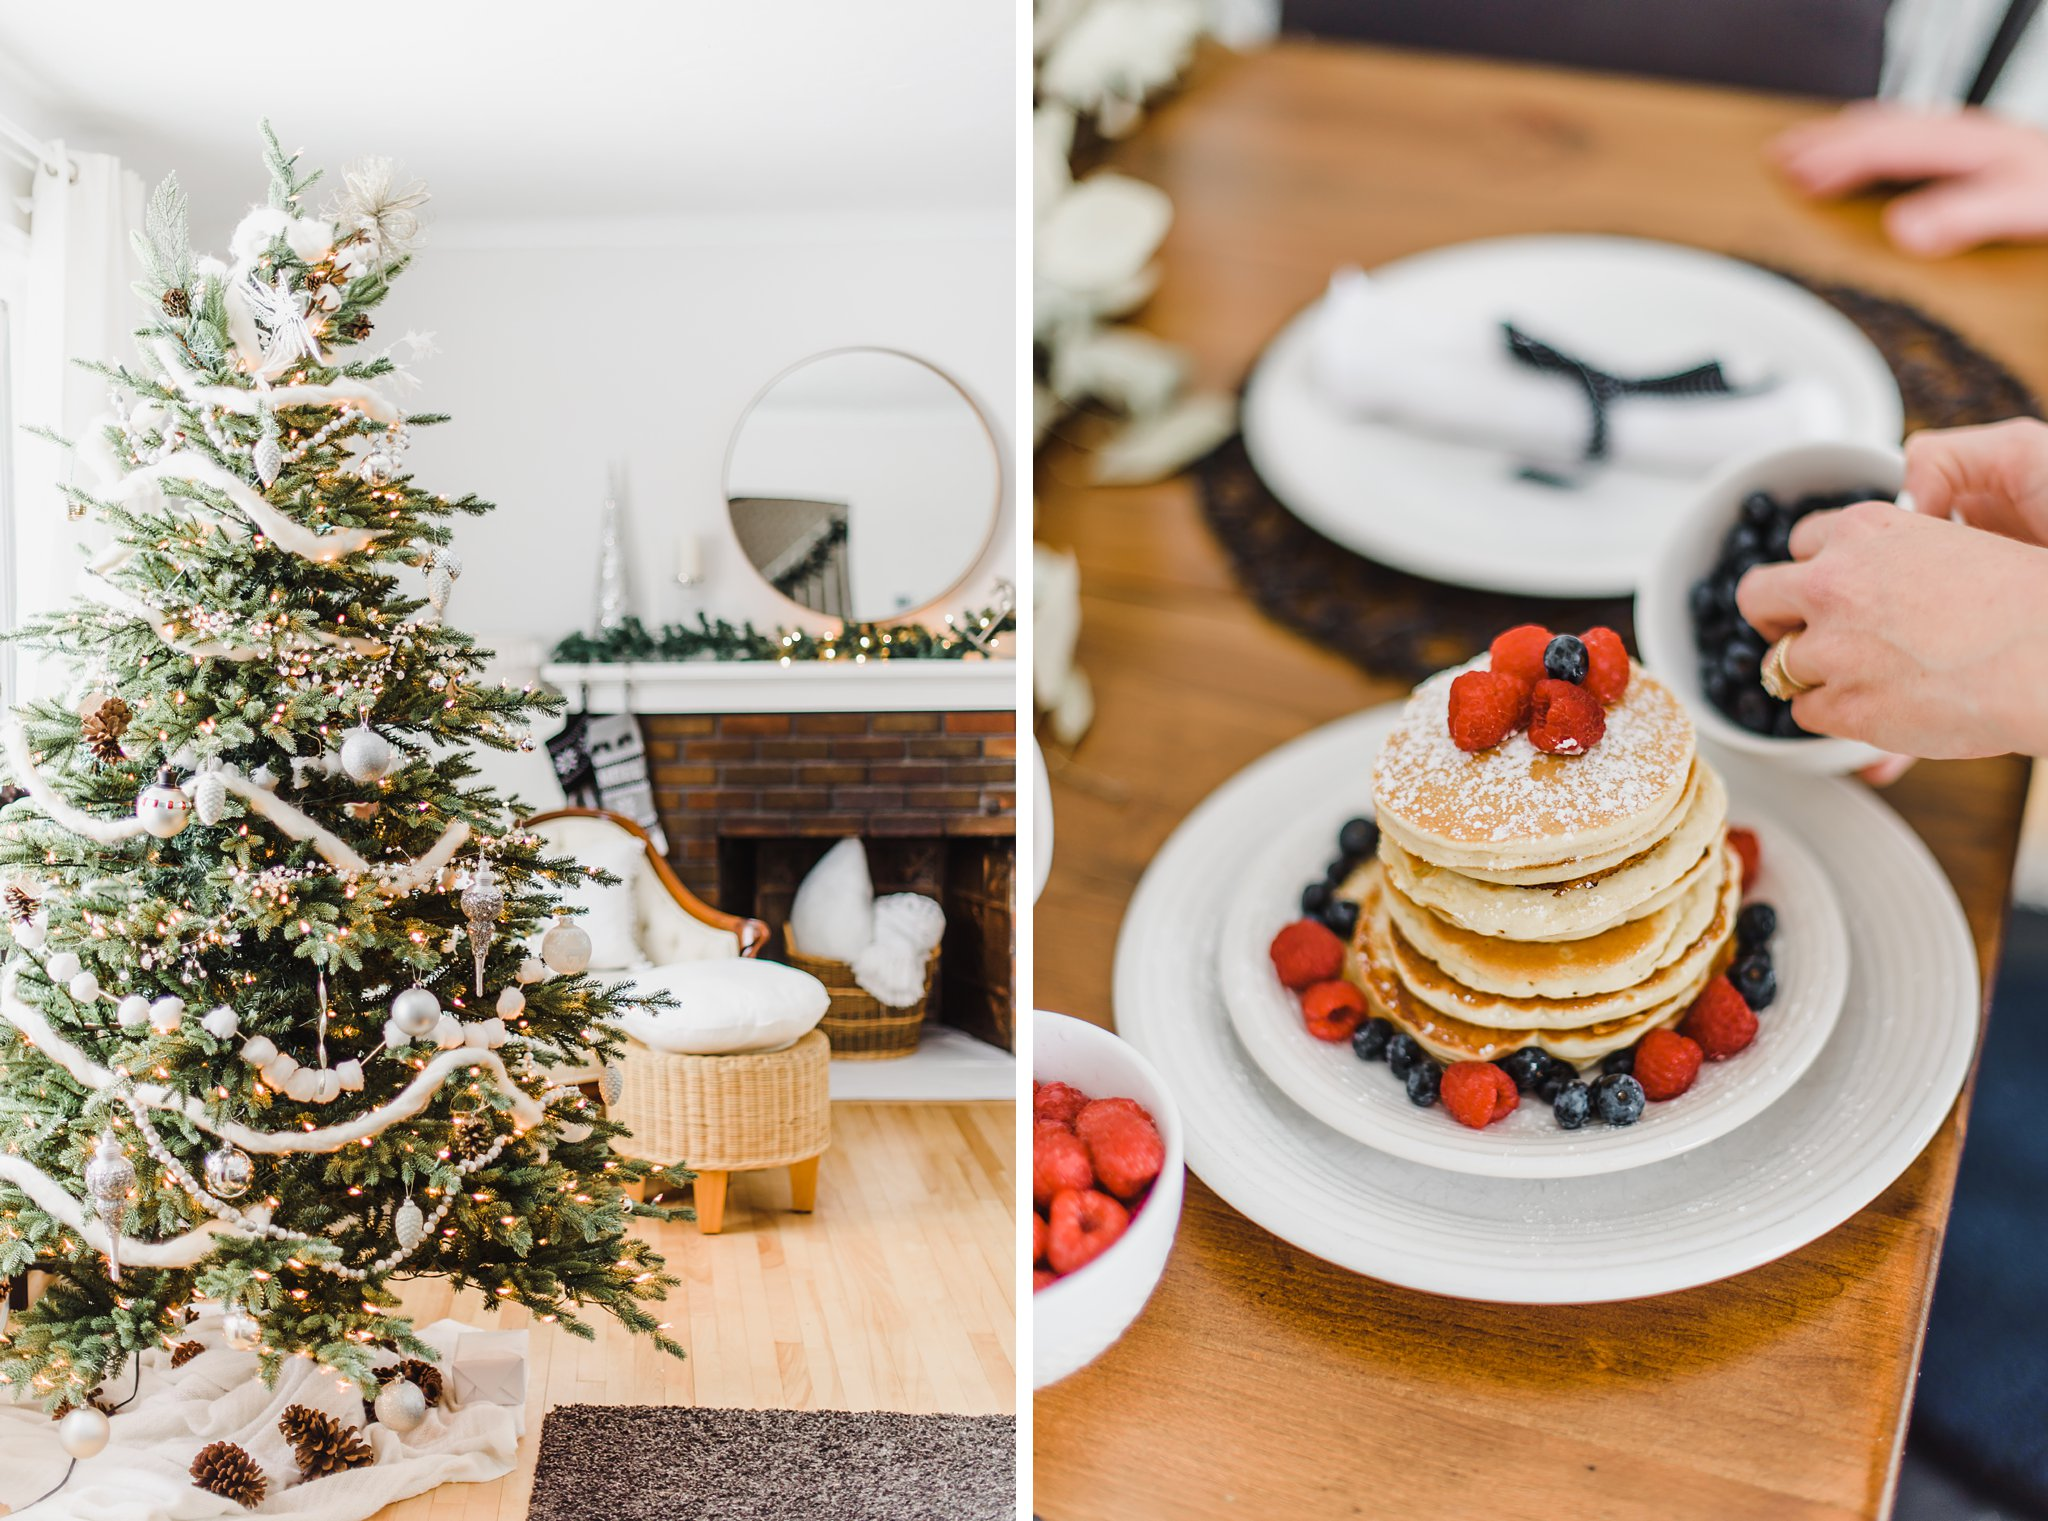 Pancake tower with raspberries and blueberries, Lifestyle Maternity Photos in Ottawa on 'Pancake Sunday'